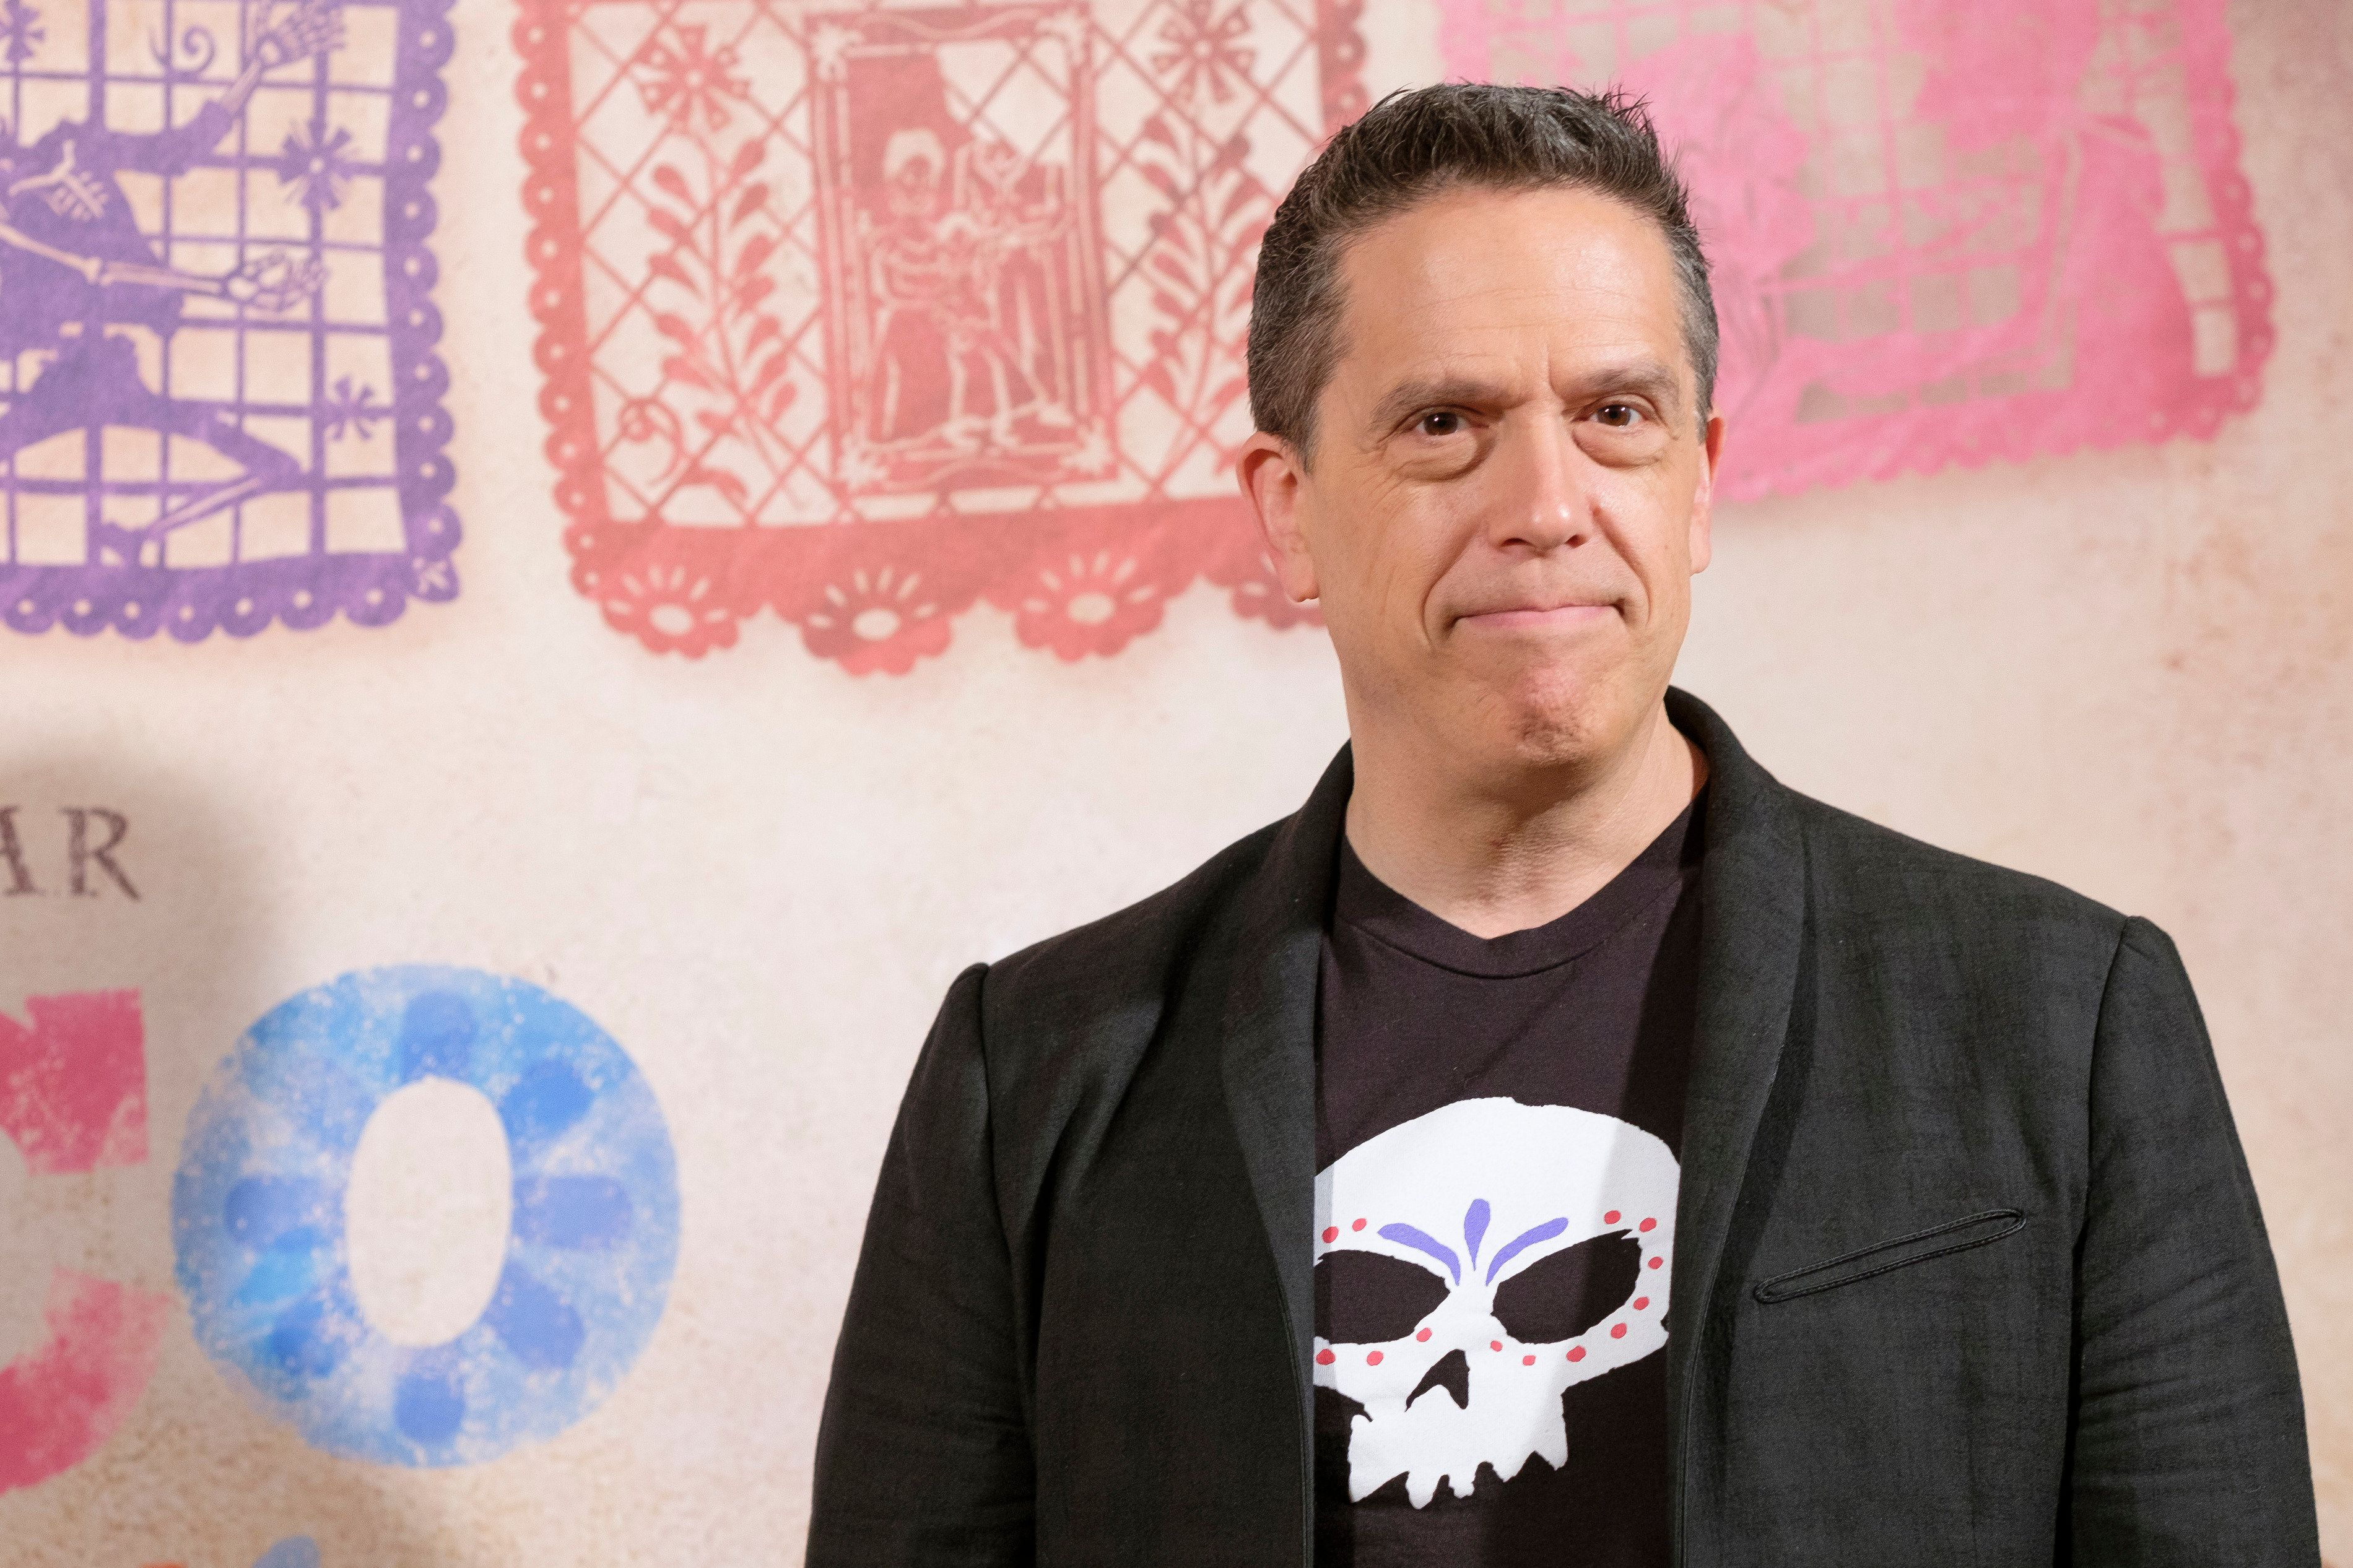 director Lee Unkrich attends the photocall of the Disney Pixar COCO movie in Madrid. Spain. November 21, 2017 (Photo by Oscar Gonzalez/NurPhoto via Getty Images)